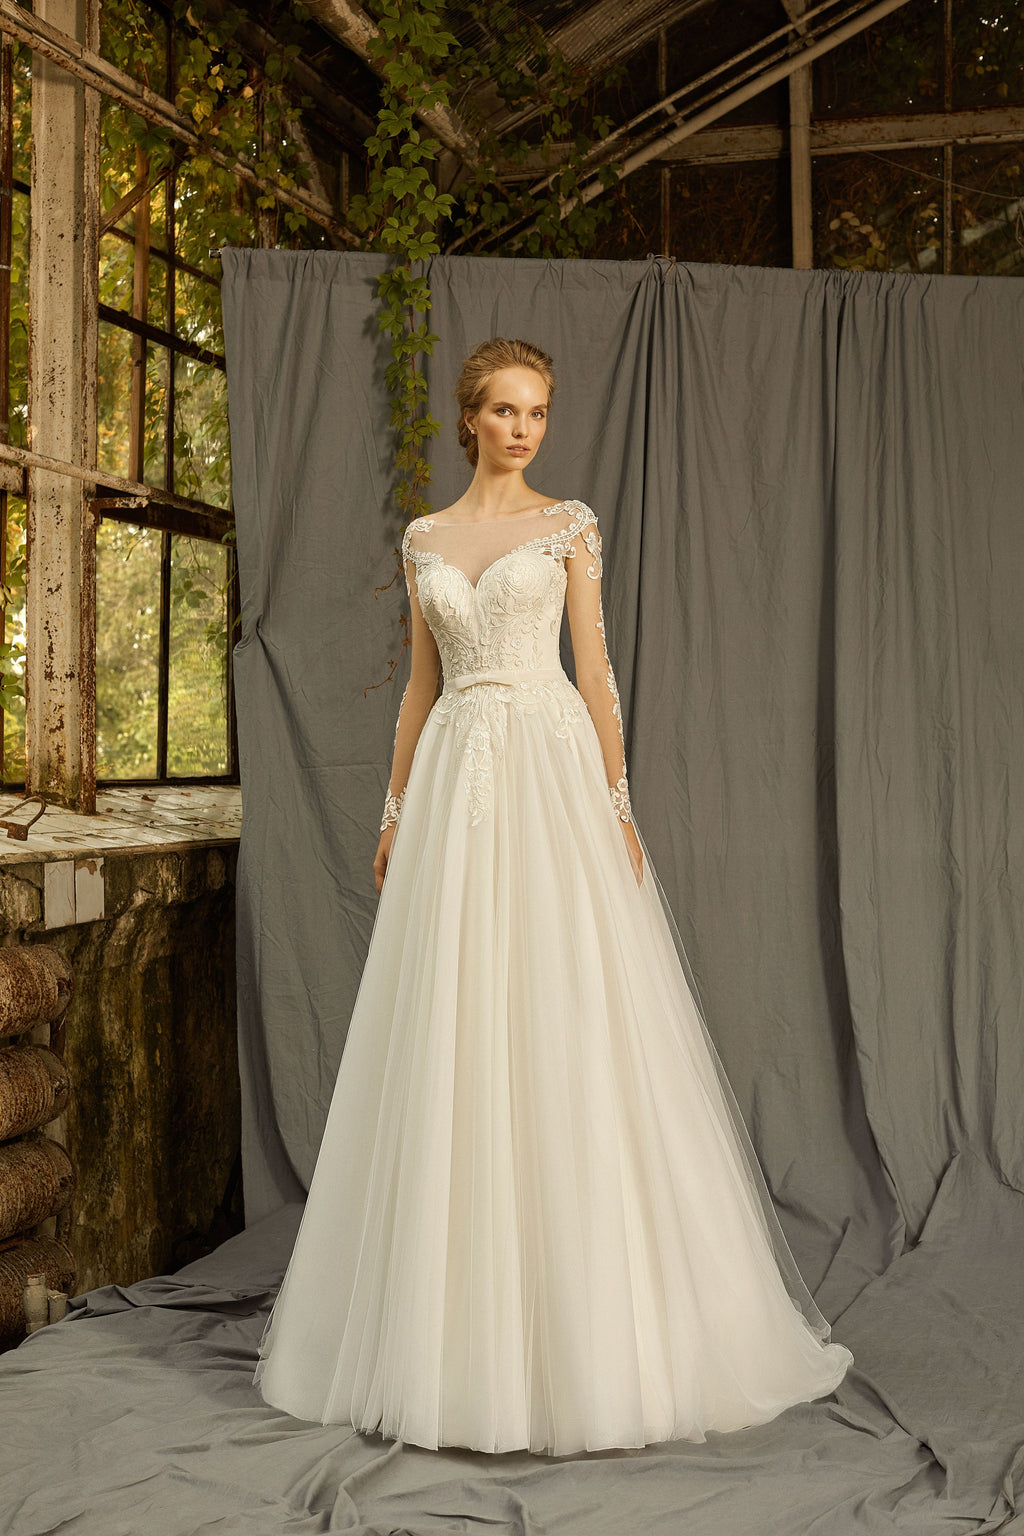 This classical A-line dress features a sweetheart bodice with illusion neckline, beautiful lace décor, and sheer long sleeves.